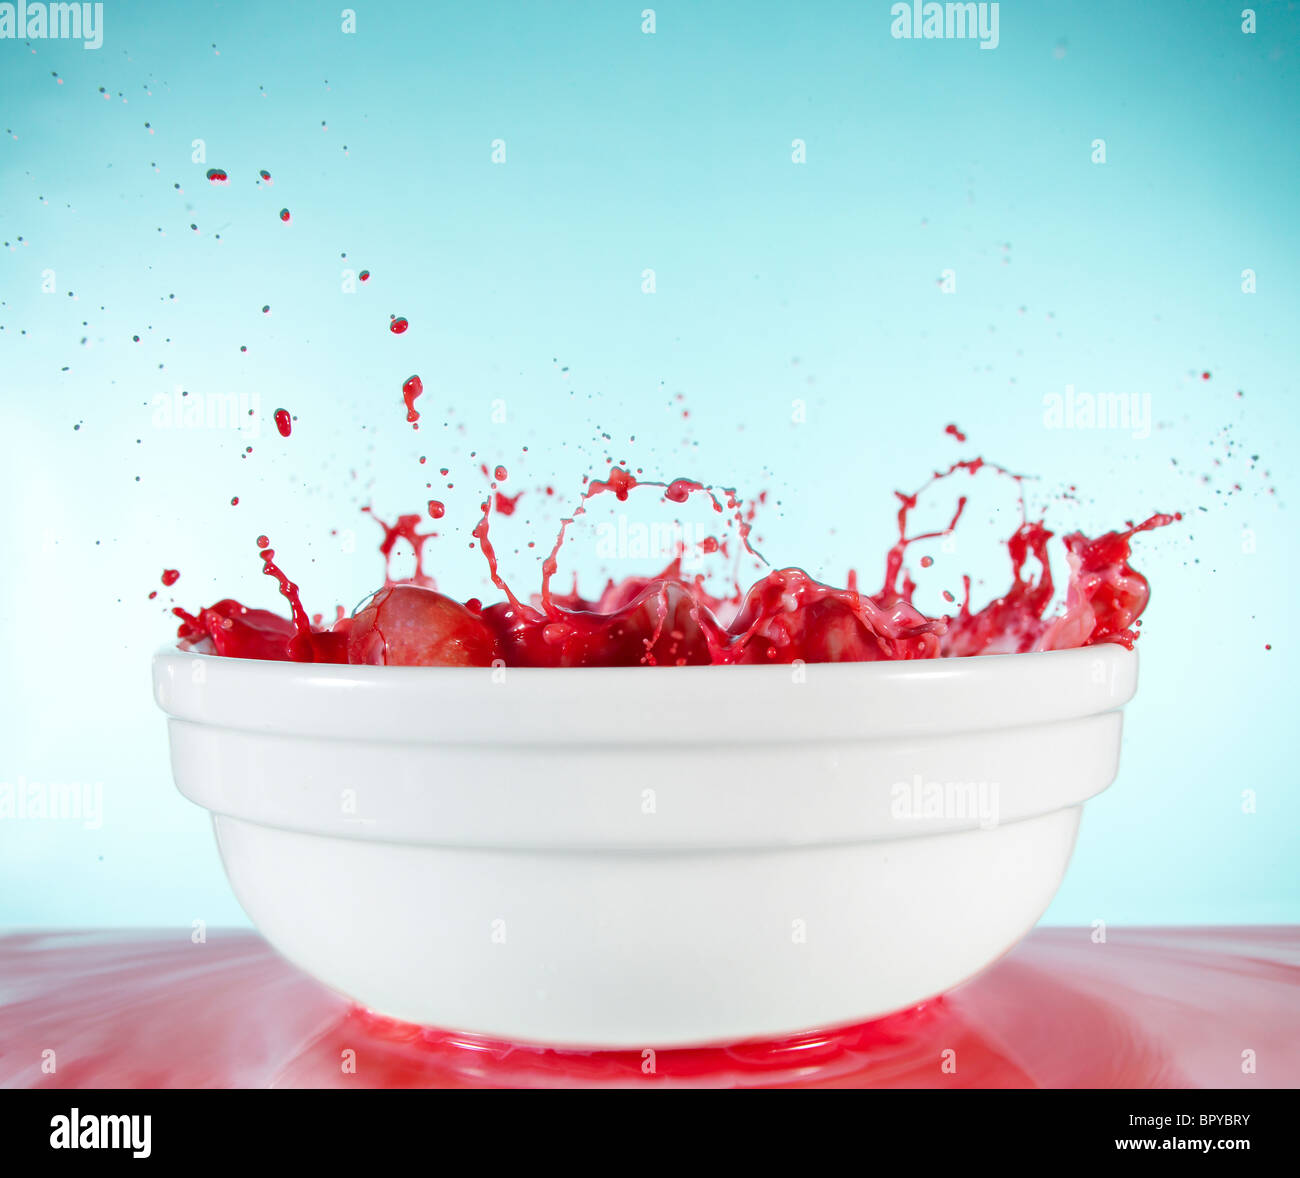 Red liquid bubbling and splashing in a white bowl - Stock Image